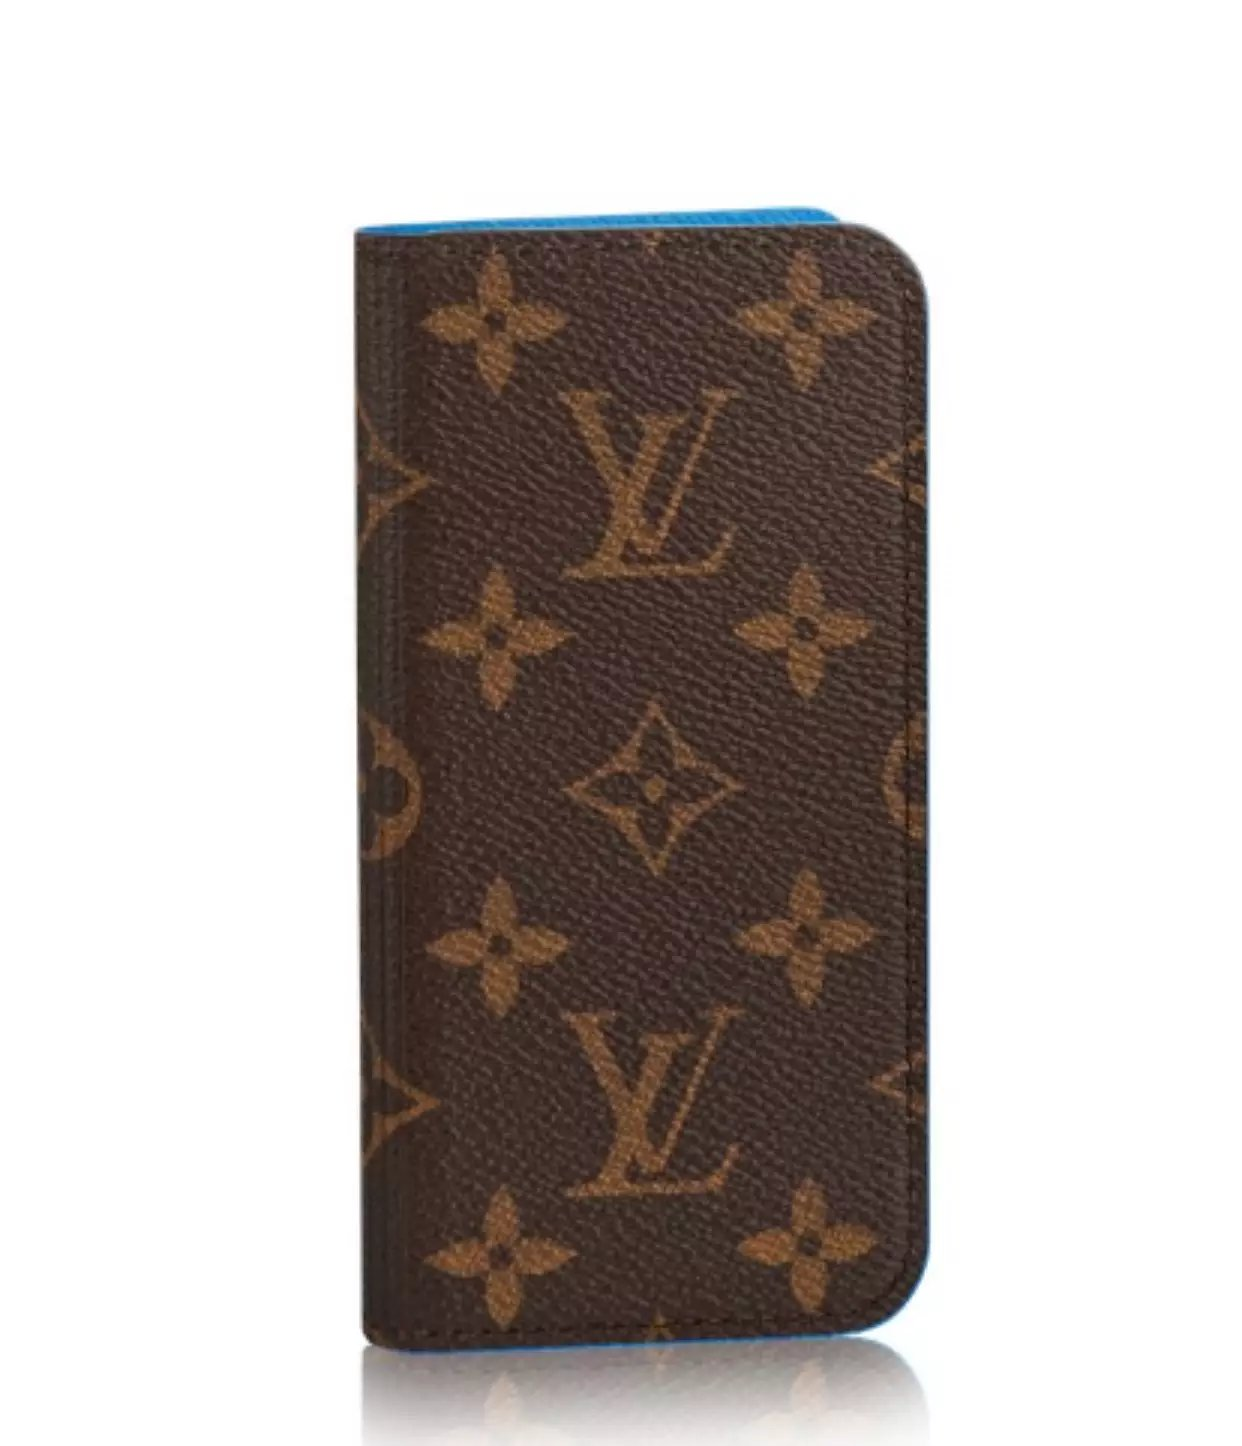 iphone hülle leder schutzhülle iphone Louis Vuitton iphone 8 Plus hüllen bumper iphone 8 Plus ilikon silikonhülle für iphone 8 Plus iphone 8 Plus over leder bedruckte handyhüllen iphone 8 Plus gehäu8 Plus reparatur iphone display größe